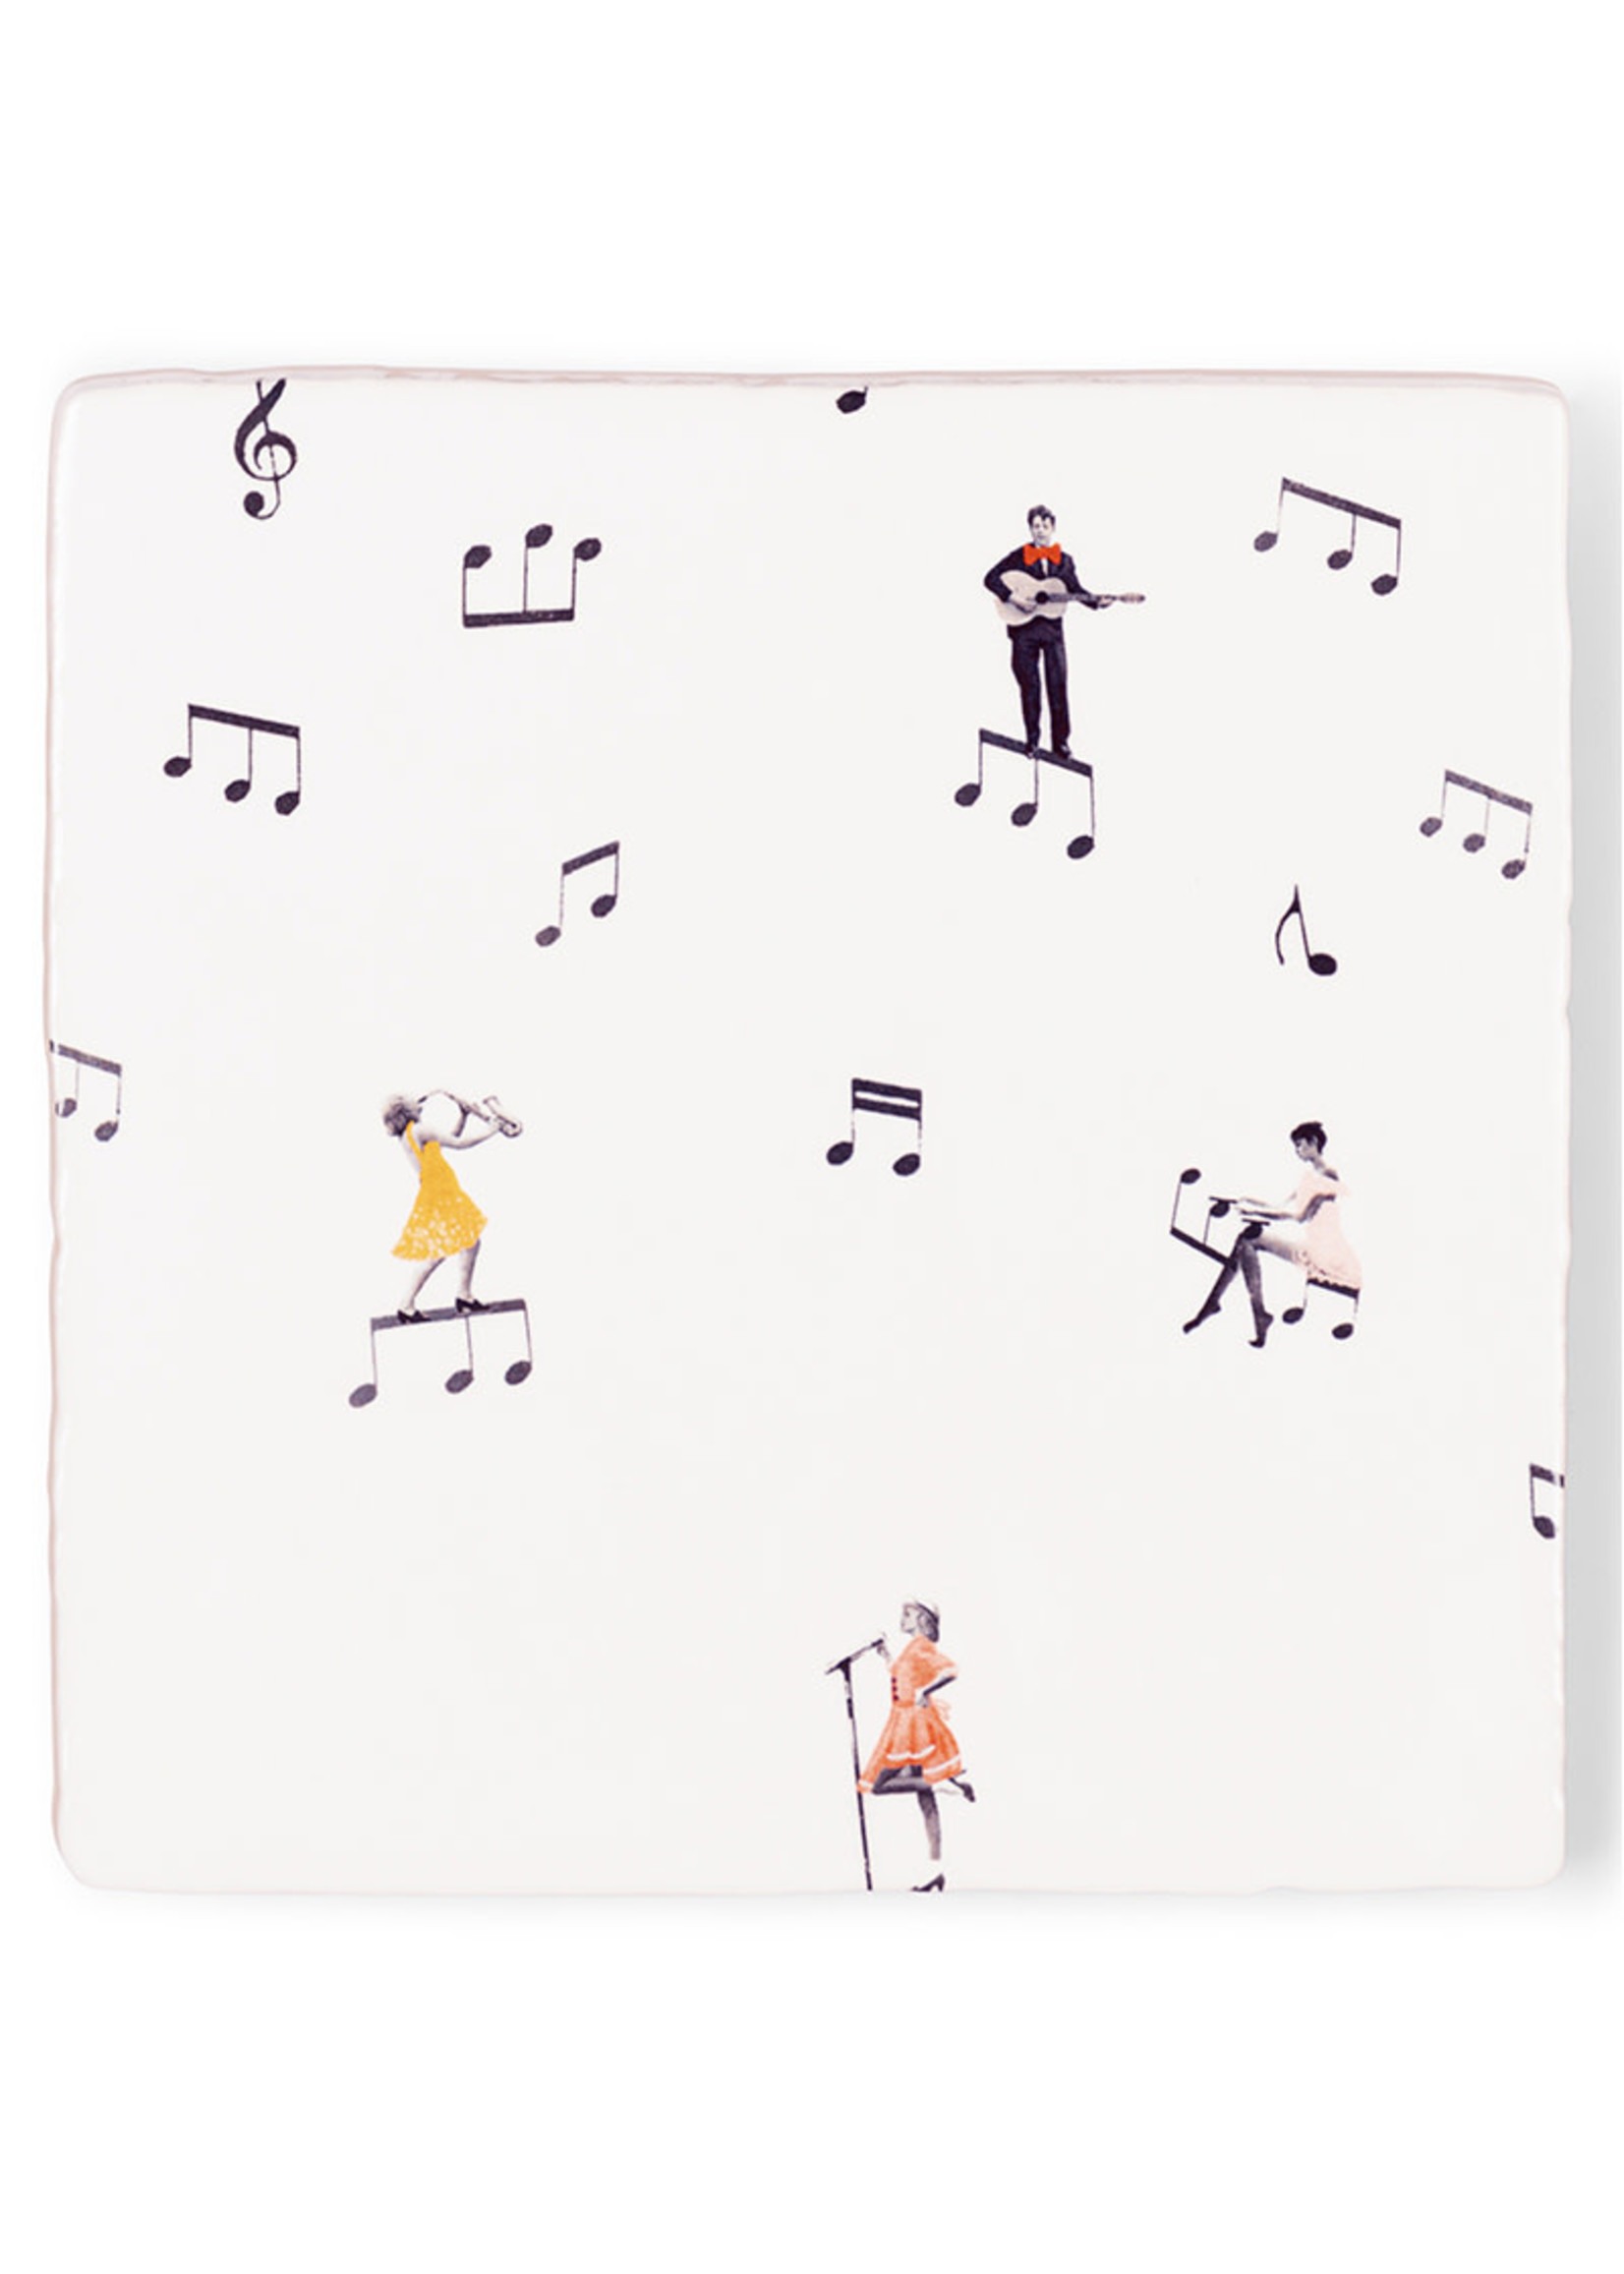 Storytiles Storytiles There's music in the air 13x13cm